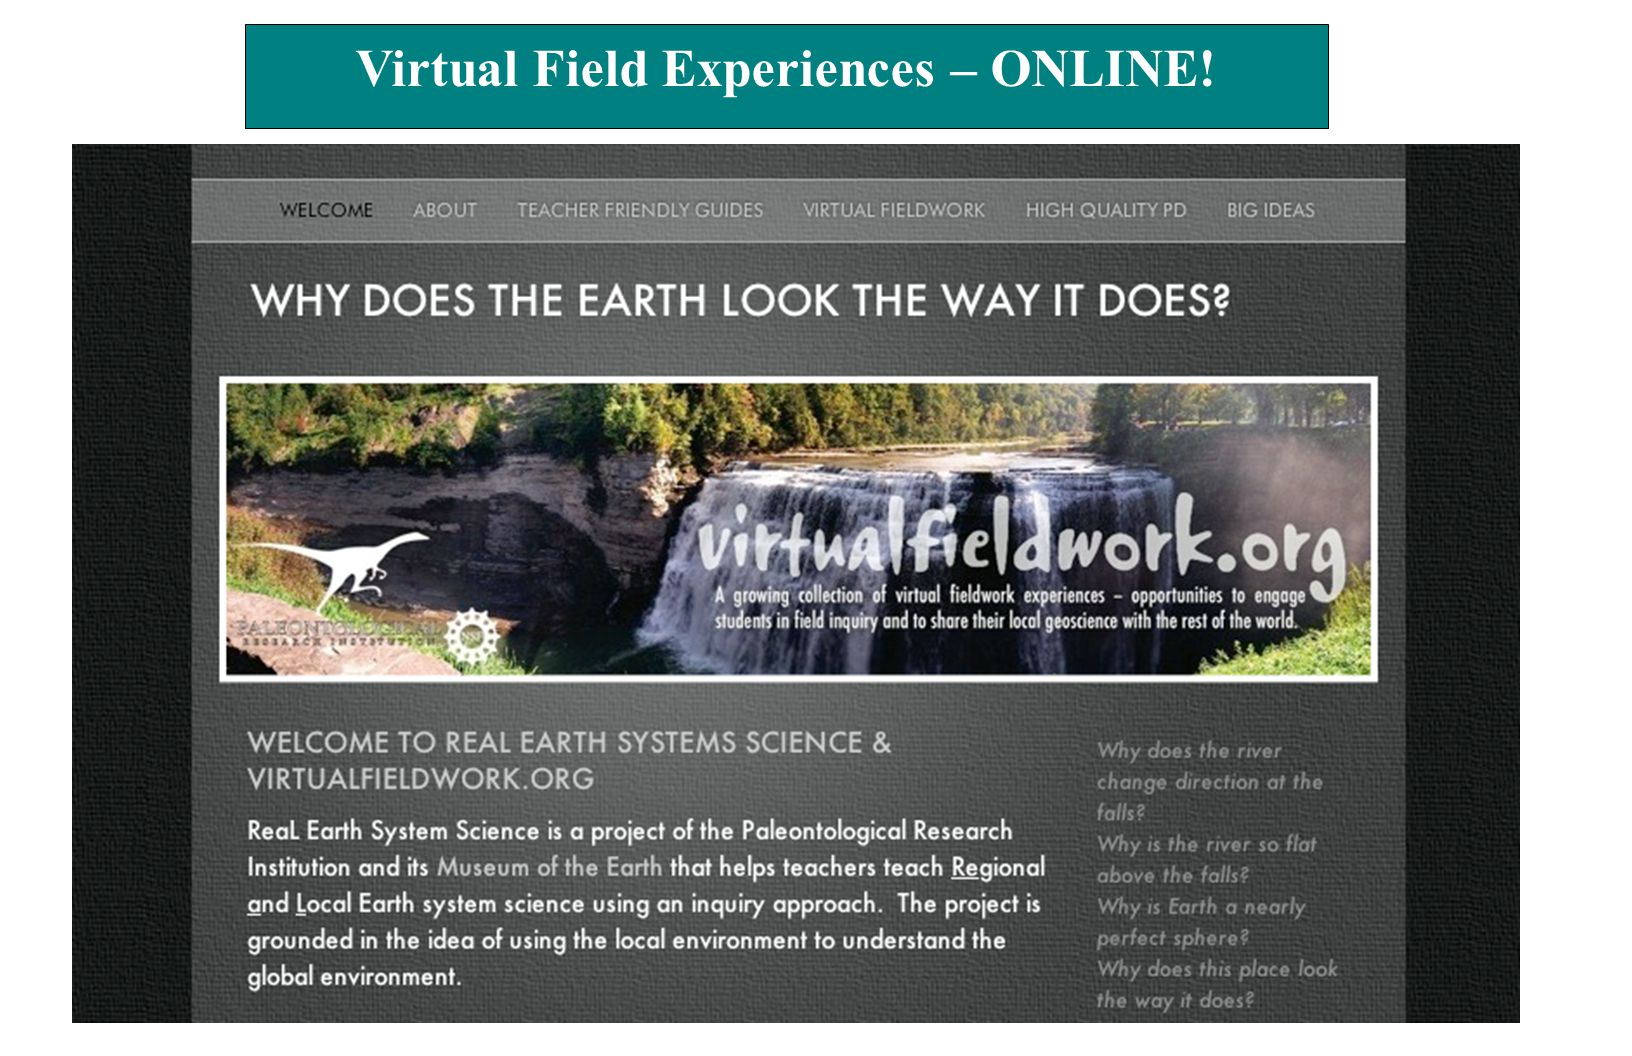 Virtual Field Experiences – ONLINE!